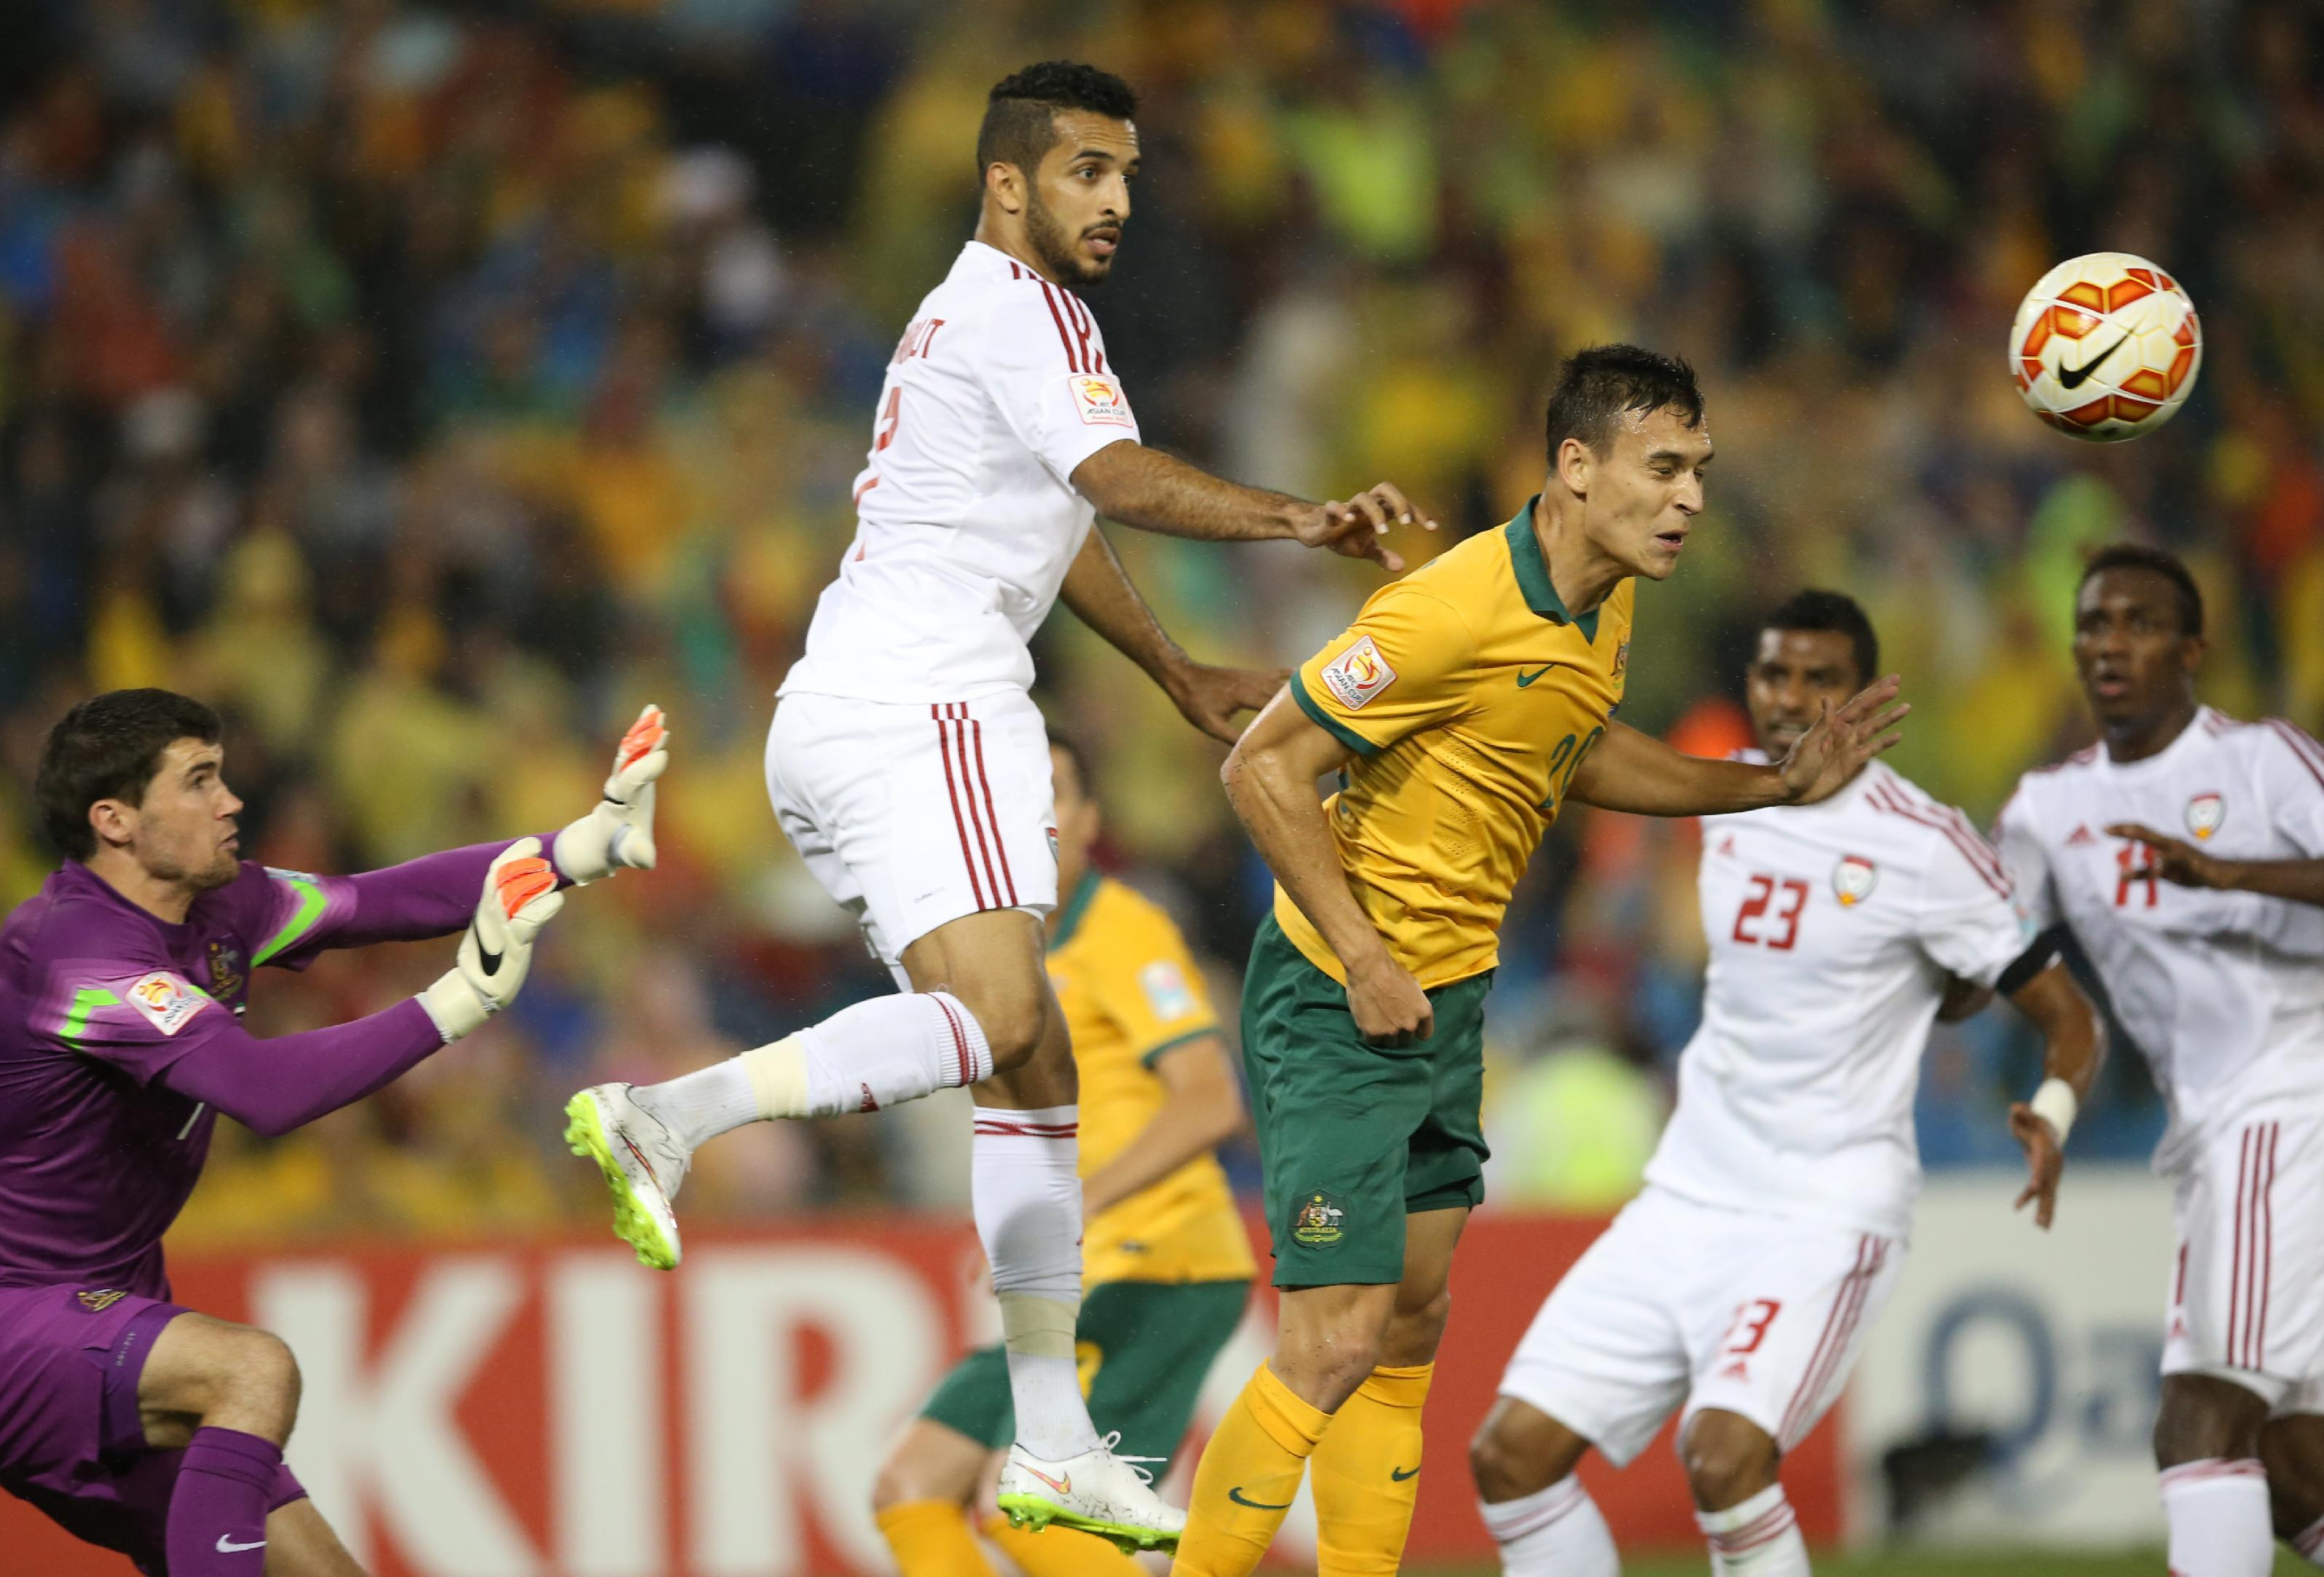 Iraq, UAE play for Middle East supremacy in 3rd-place match